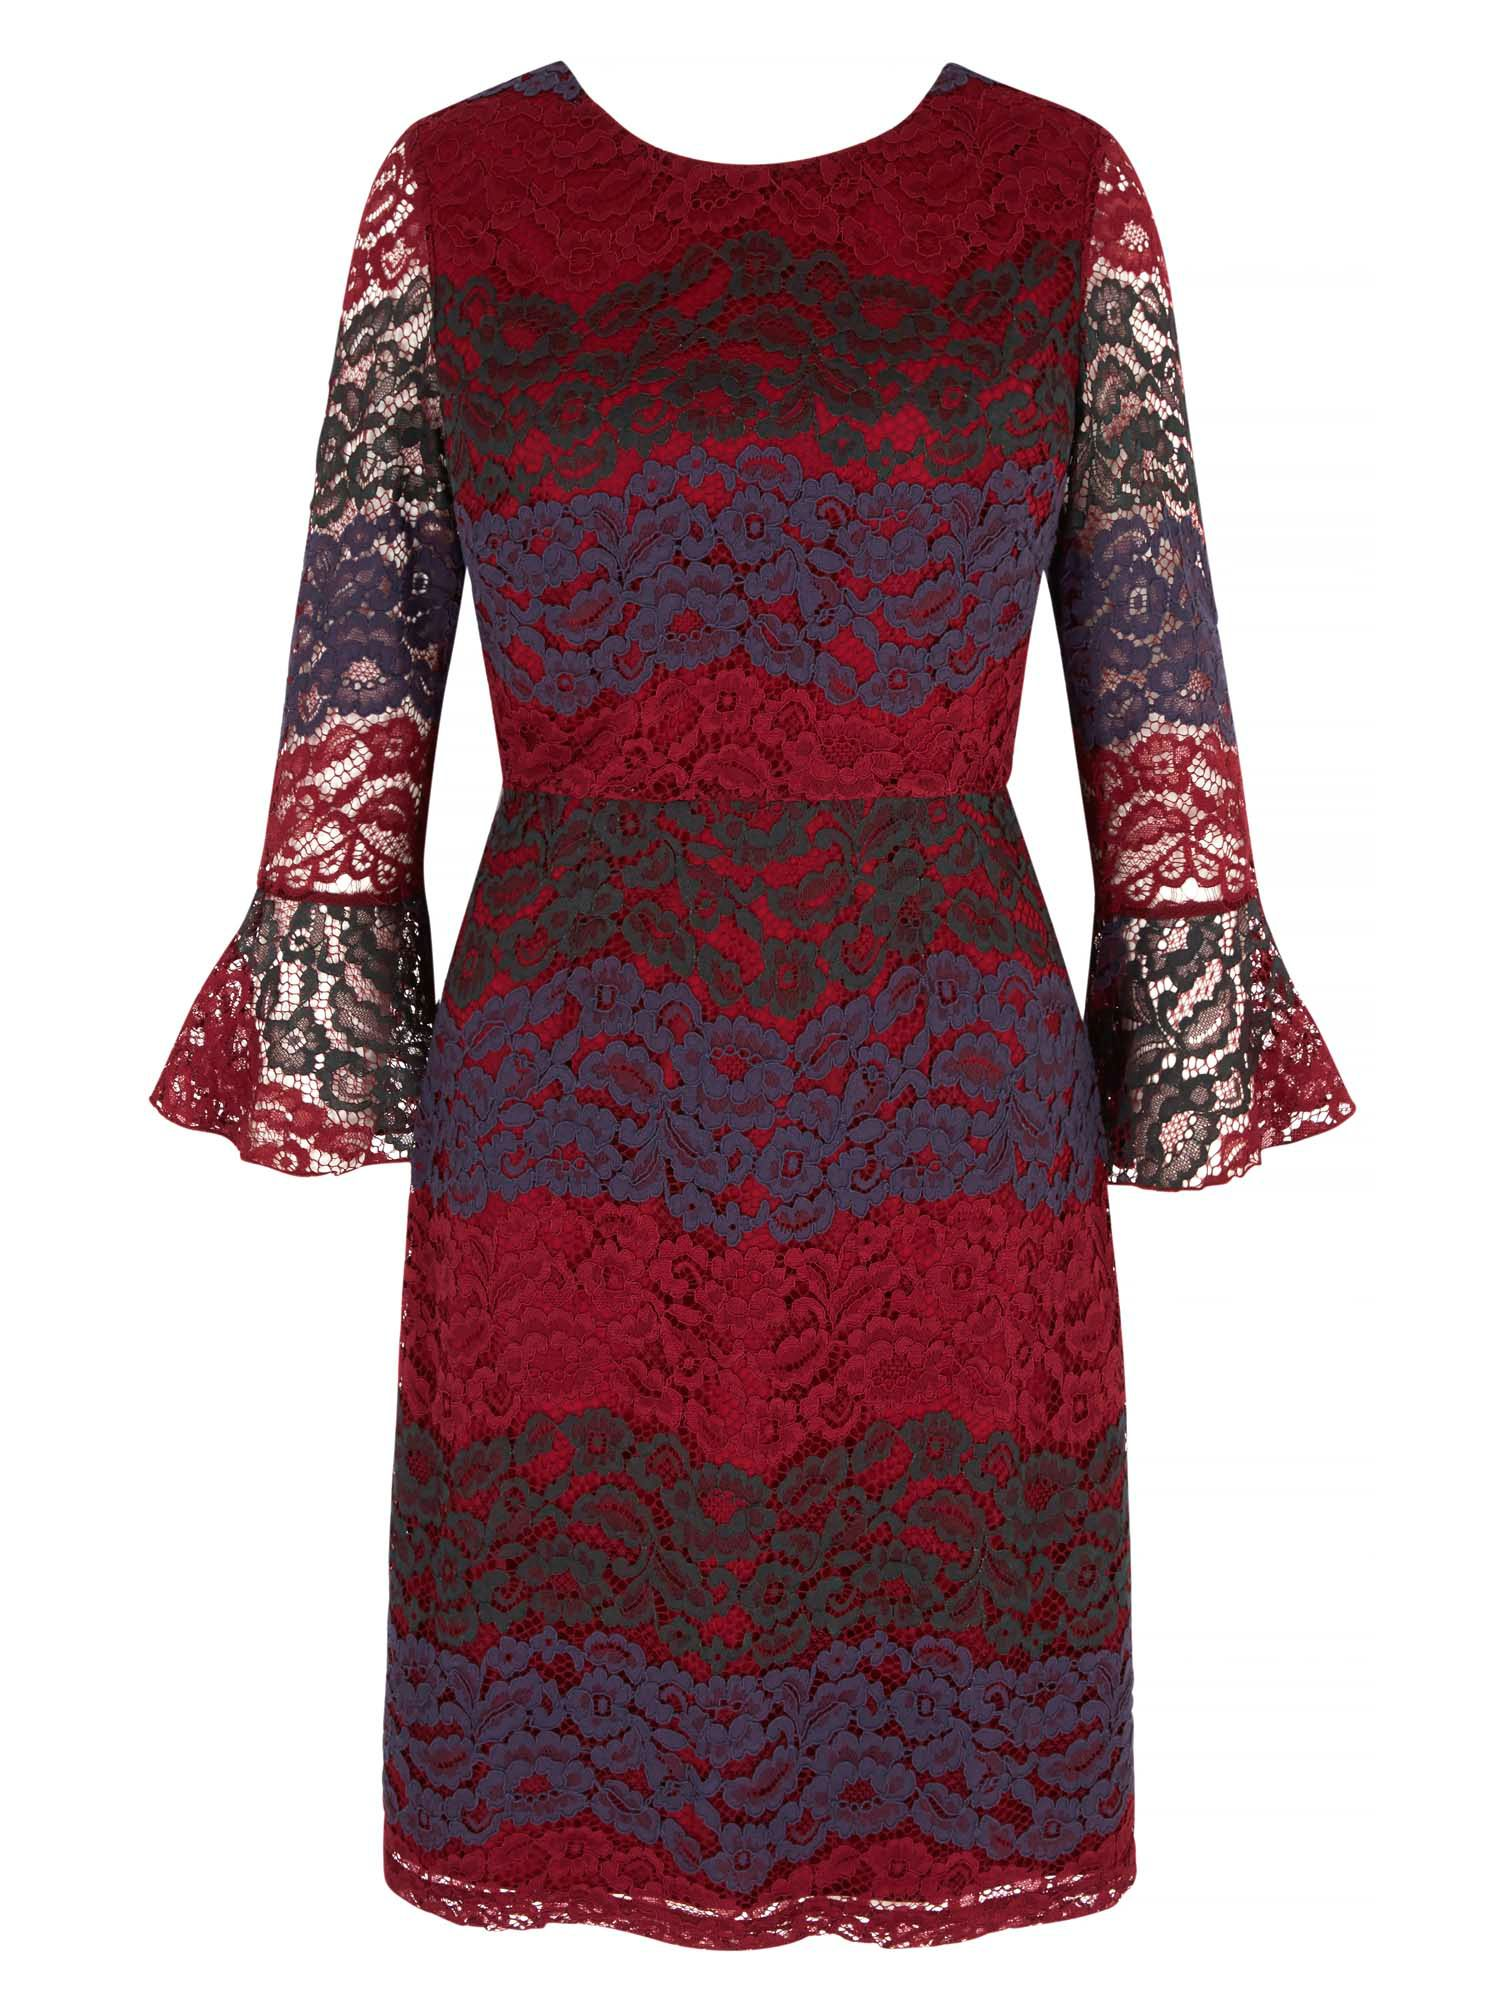 Yumi Vertical Lace Dress, Beet Red